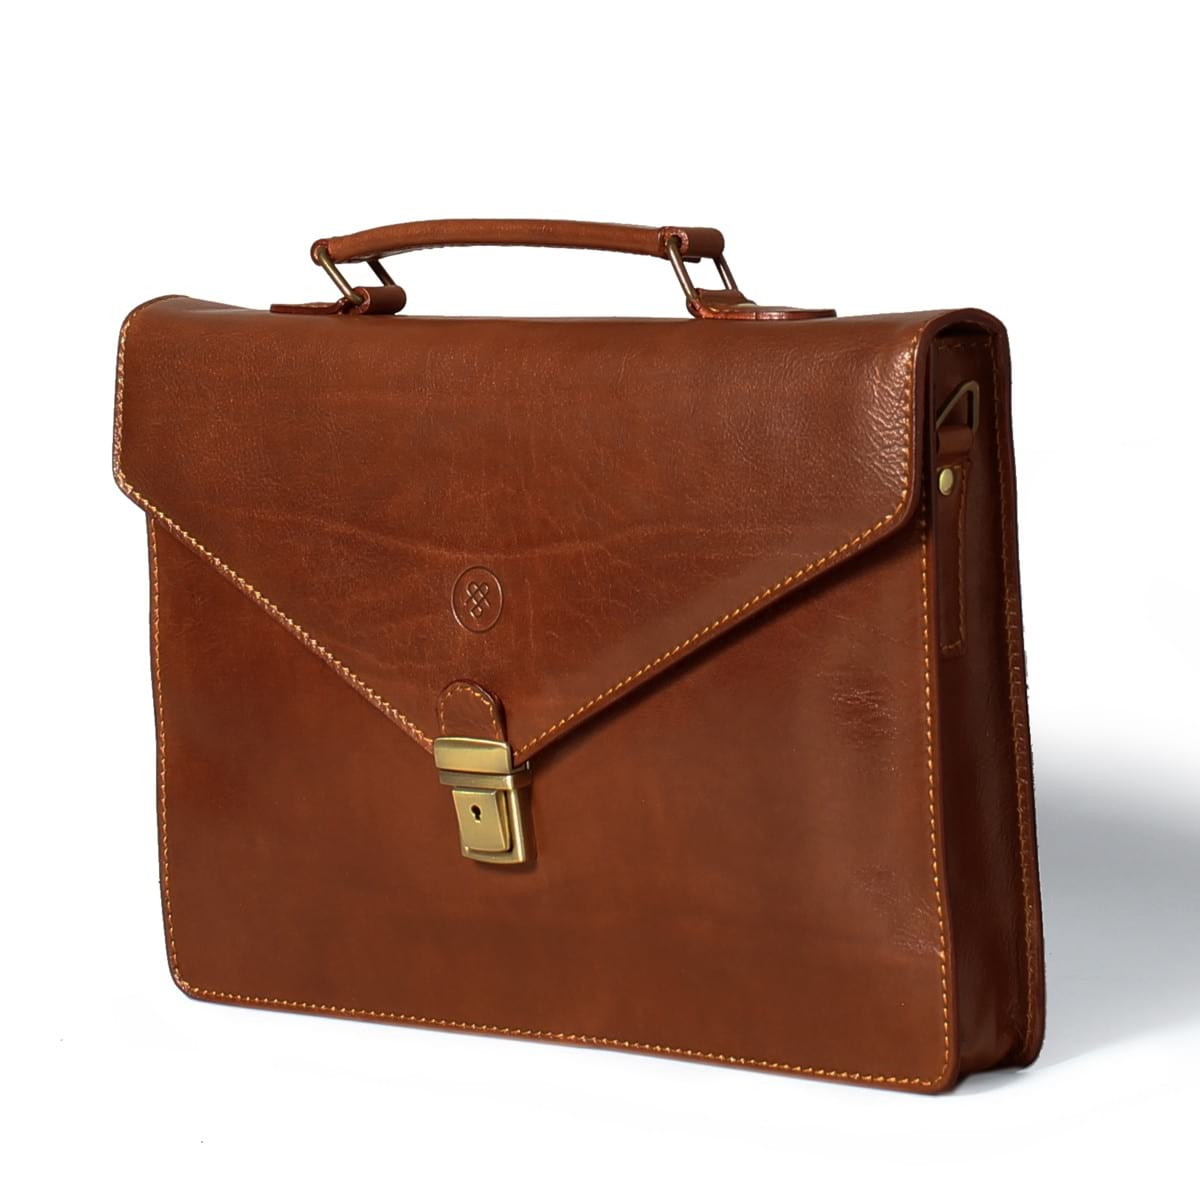 leather briefcase for men photo - 1